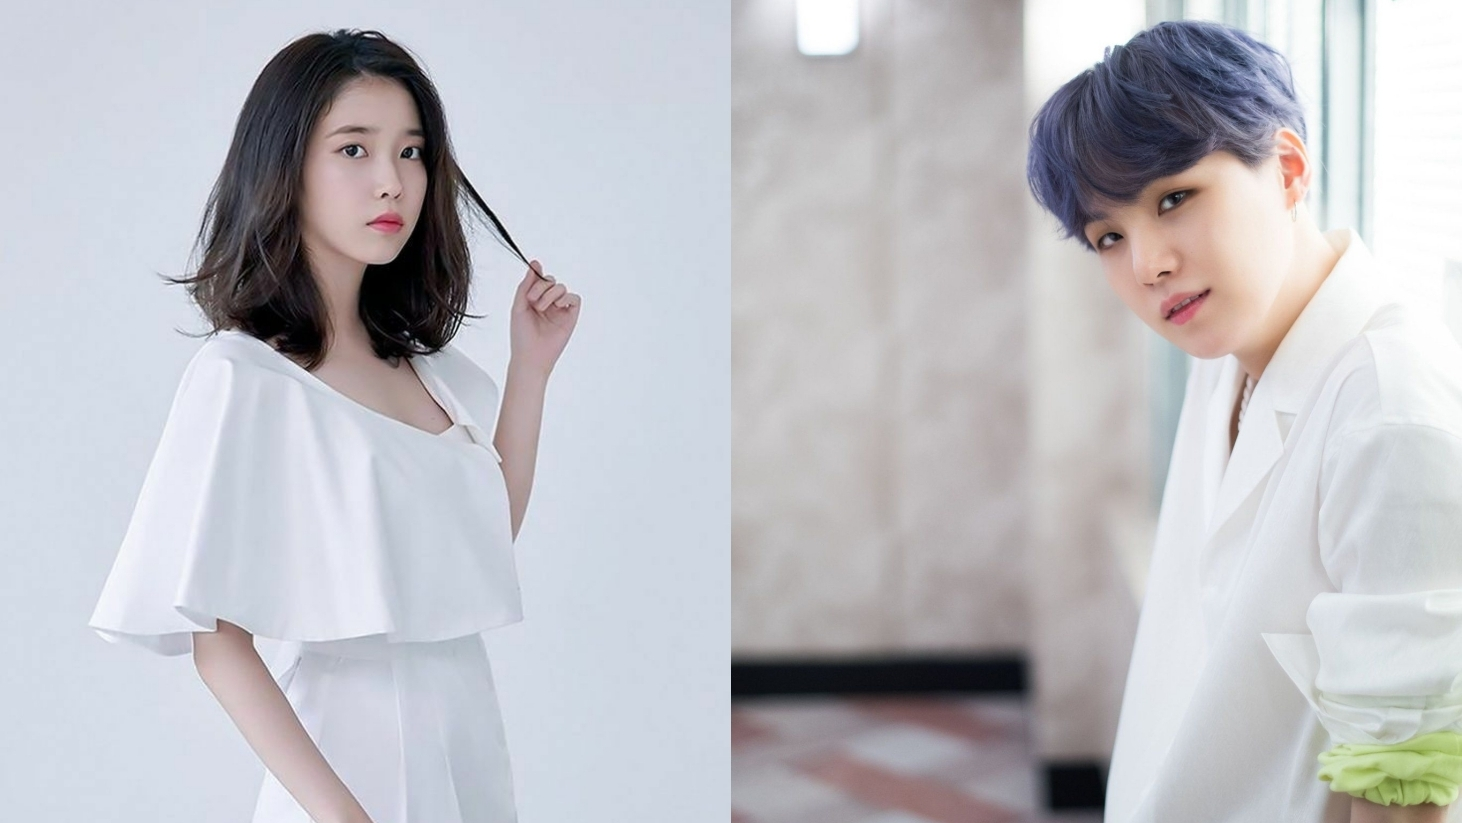 IU Releases First Teaser for Collaboration Song with BTS' Suga